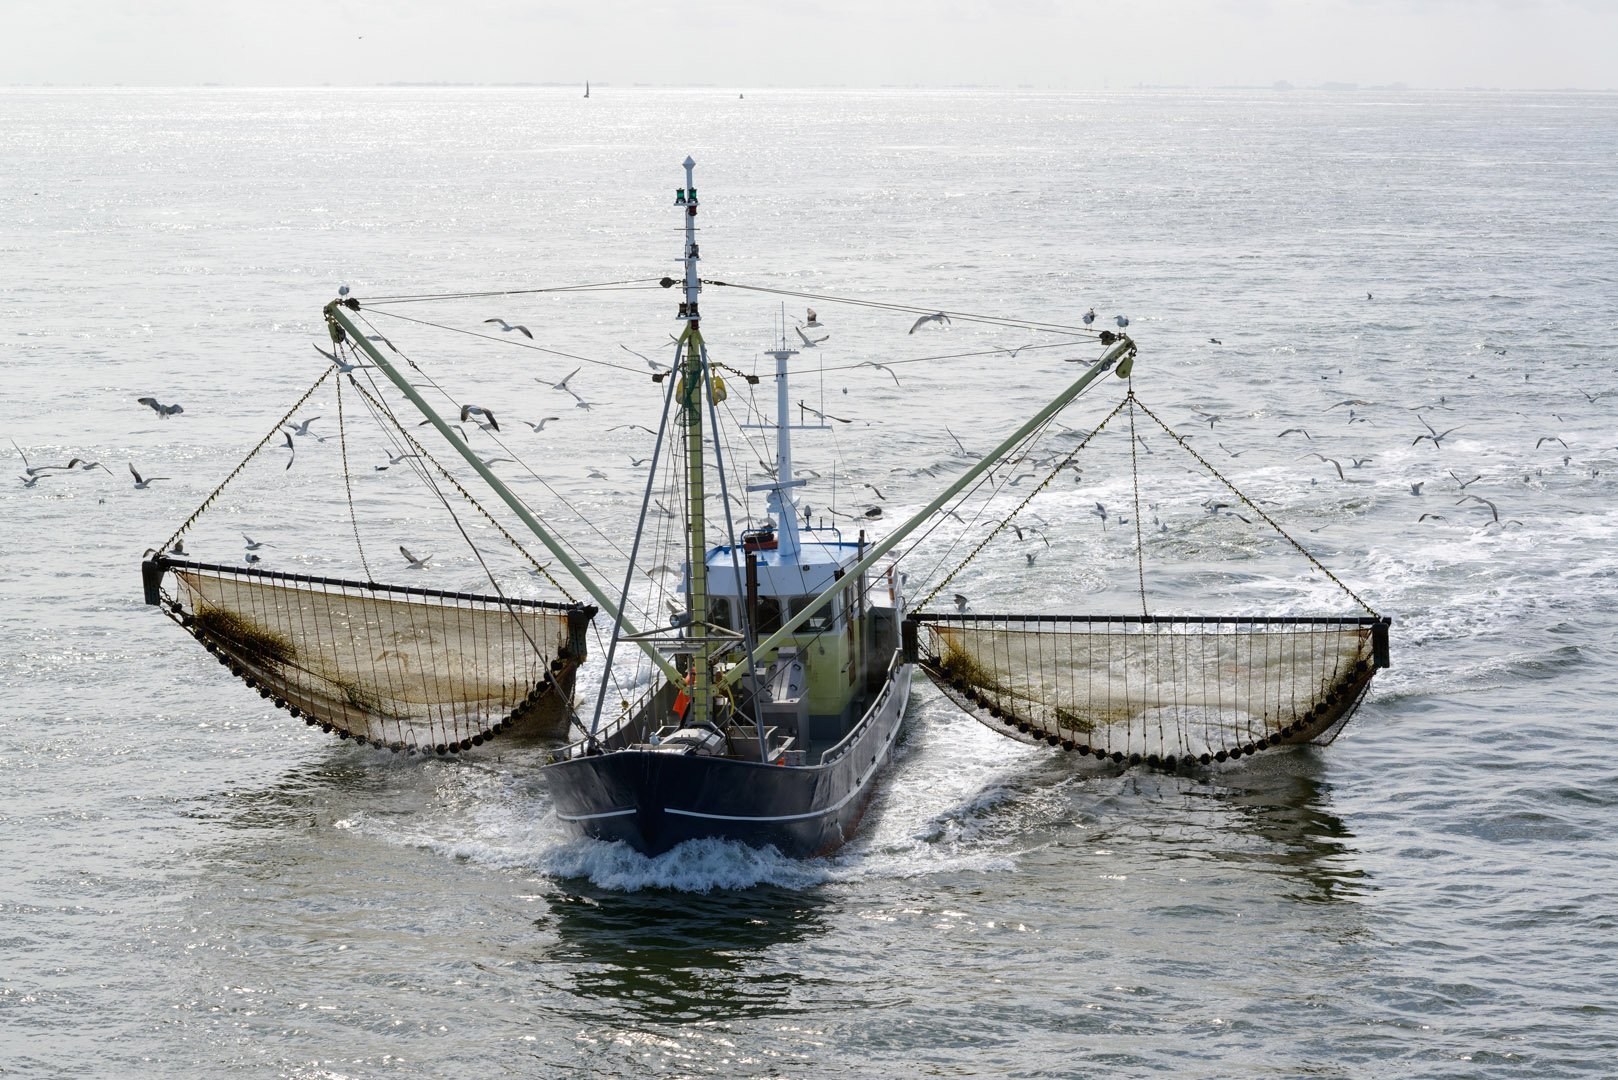 The BLOOM Association has hit out at the Dutch industrial lobby group behind the campaign to legalise electric-pulse fishing in EU waters